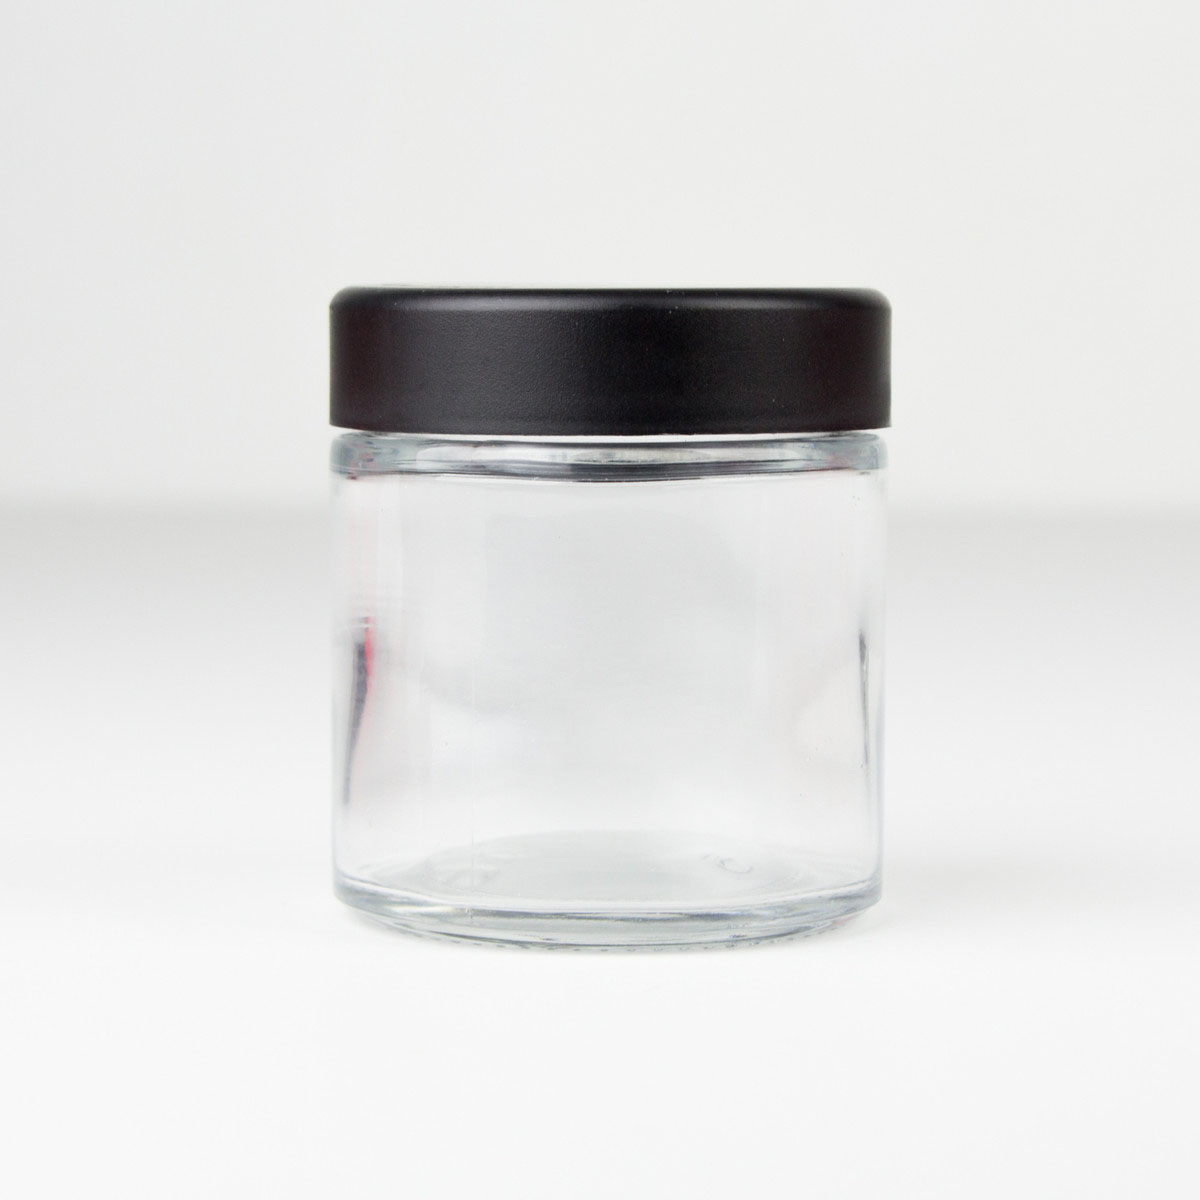 Child Resistant Black Lid For 3oz Premium Flush Glass Jar (108 Qty.)